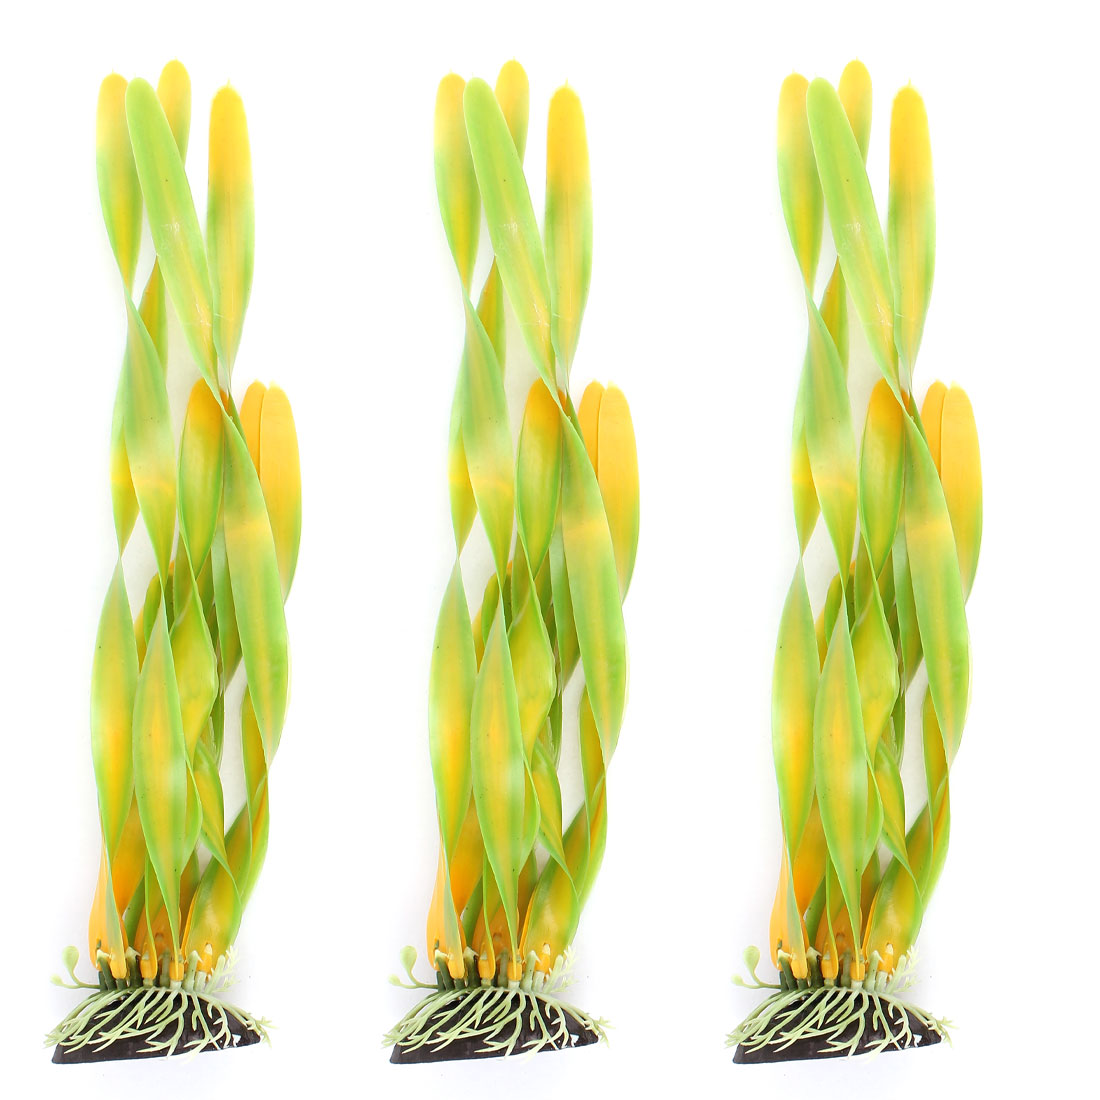 Plastic Landscape Aquascaping Aquarium Plant Underwater Grass Decoration 3pcs